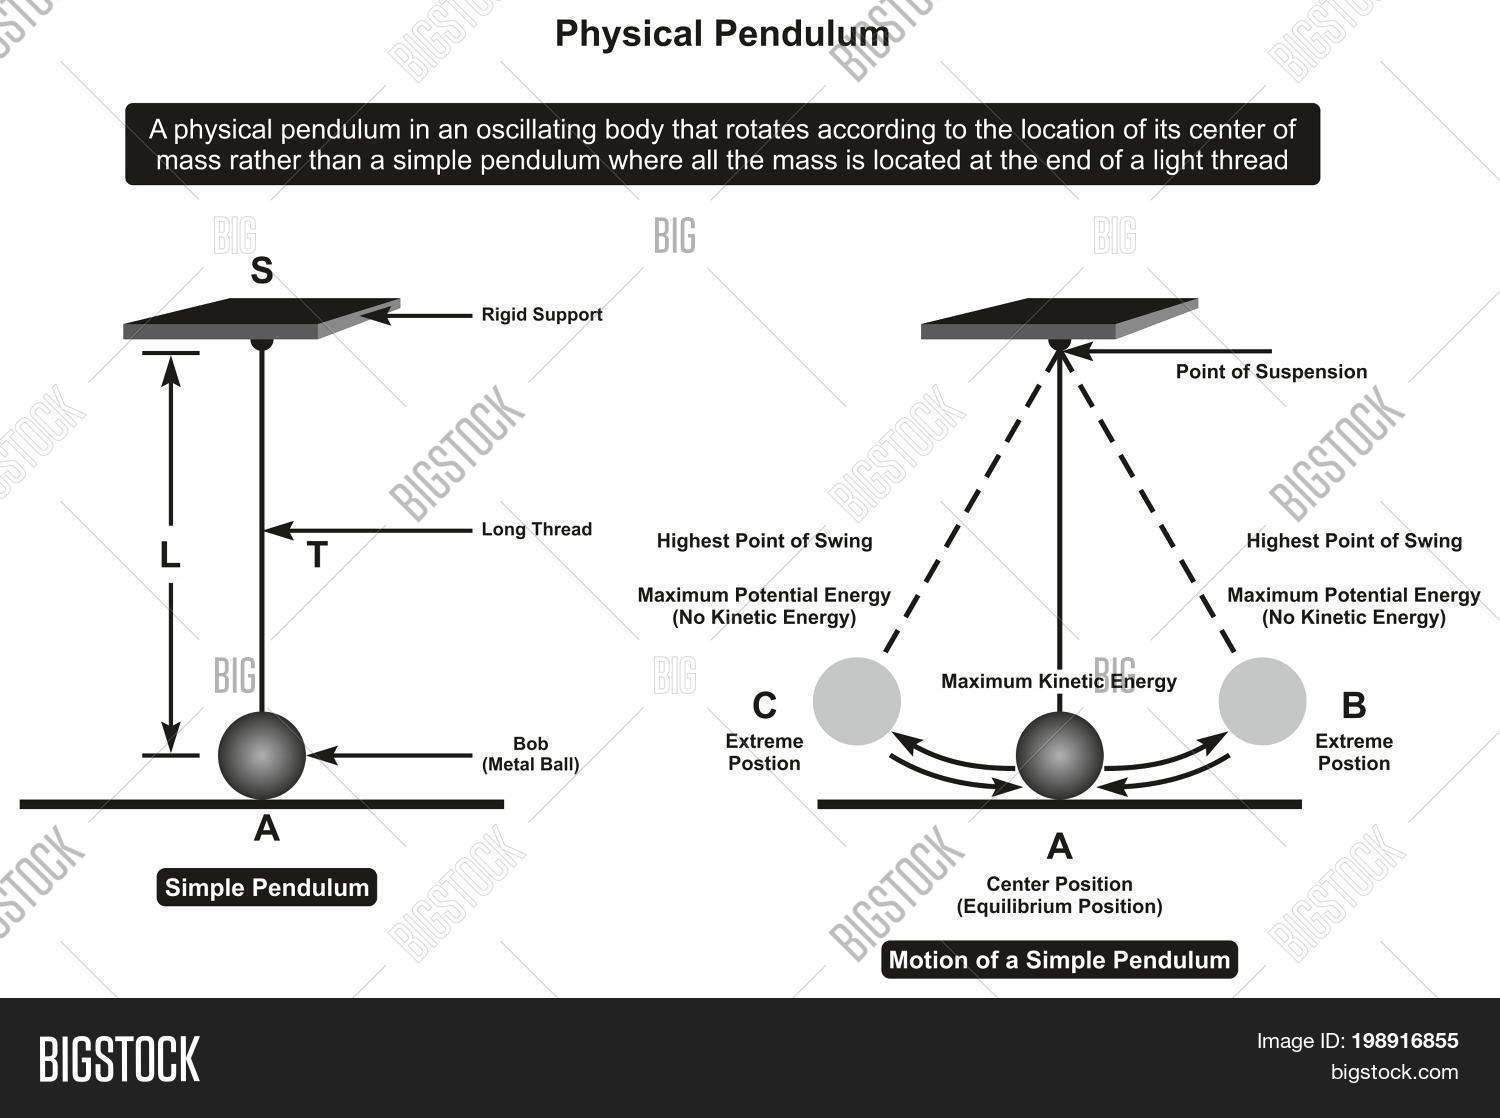 hight resolution of physical pendulum infographic diagram showing its parts and motion including rigid support thread bob point of